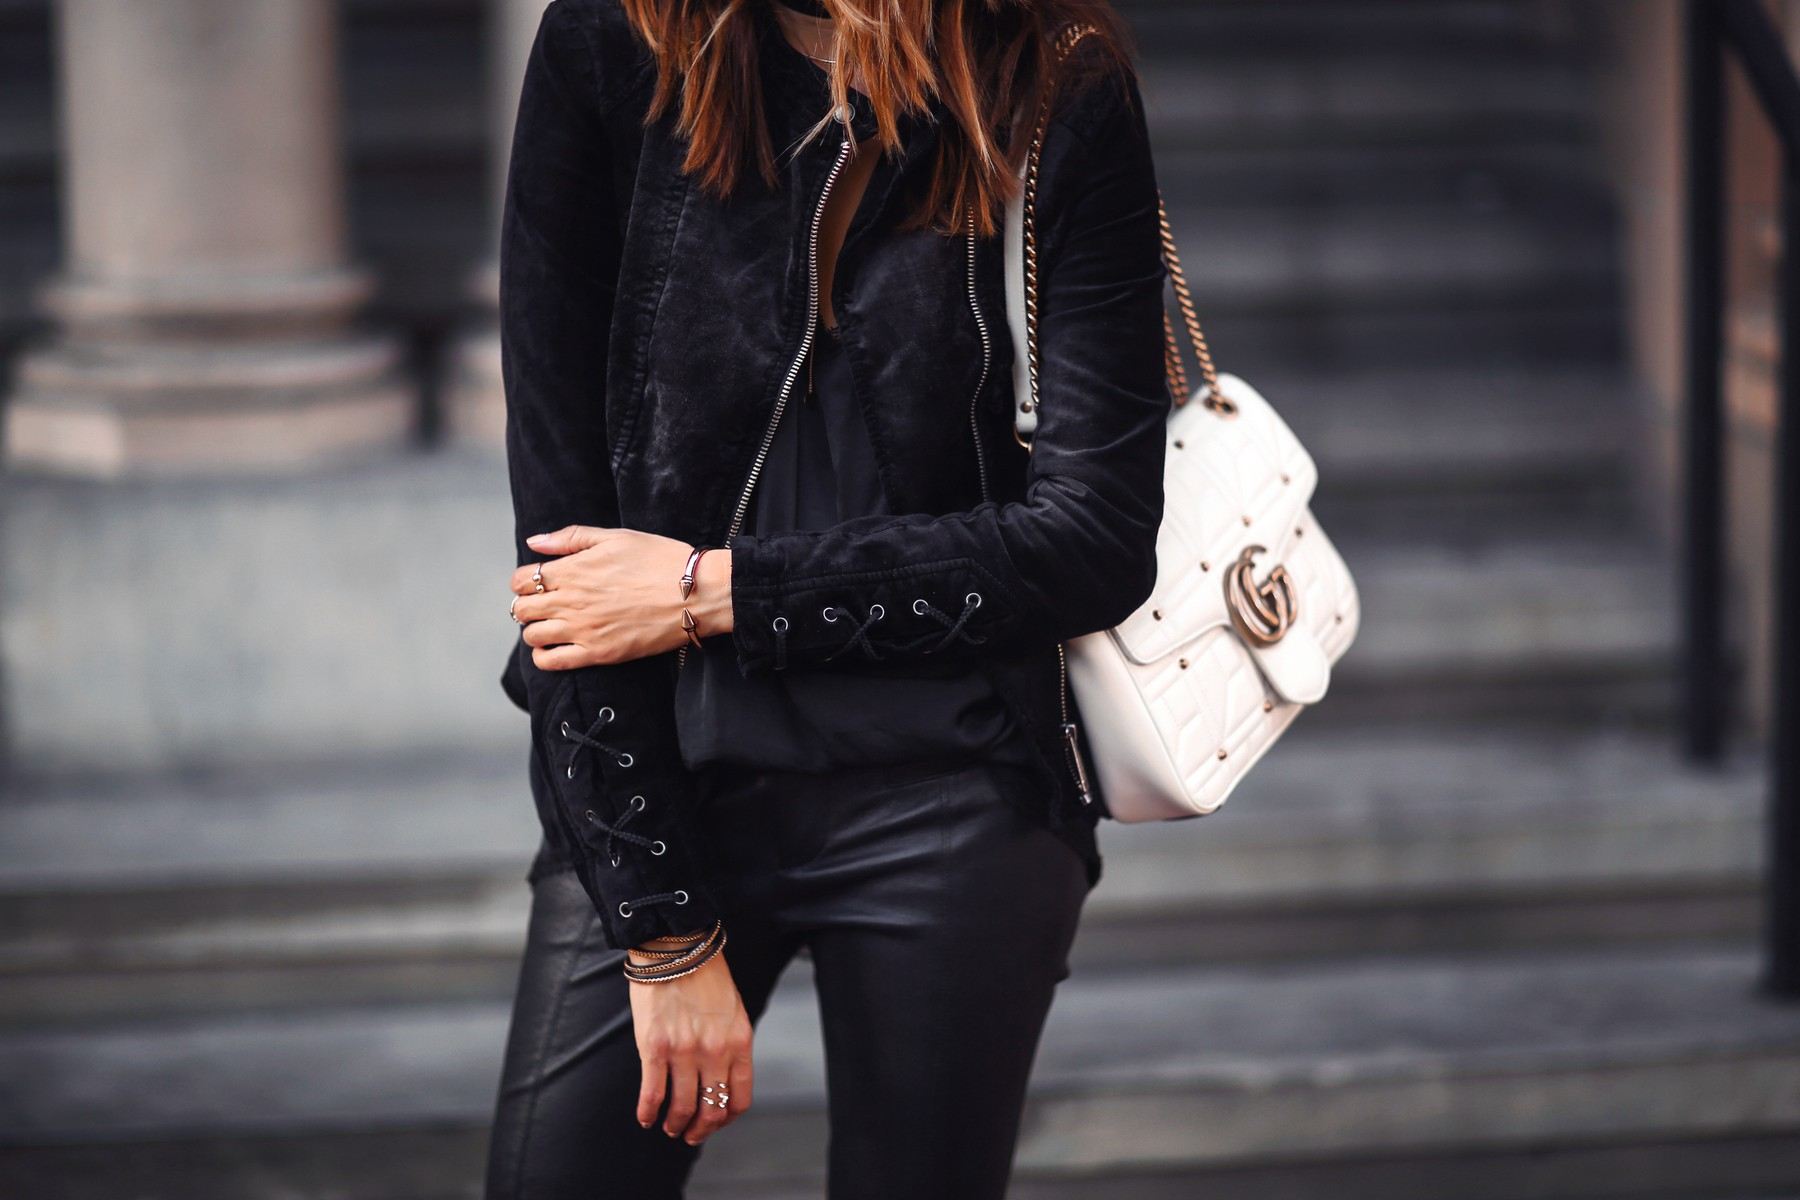 black velvet jacket, gucci bag, and leather pants